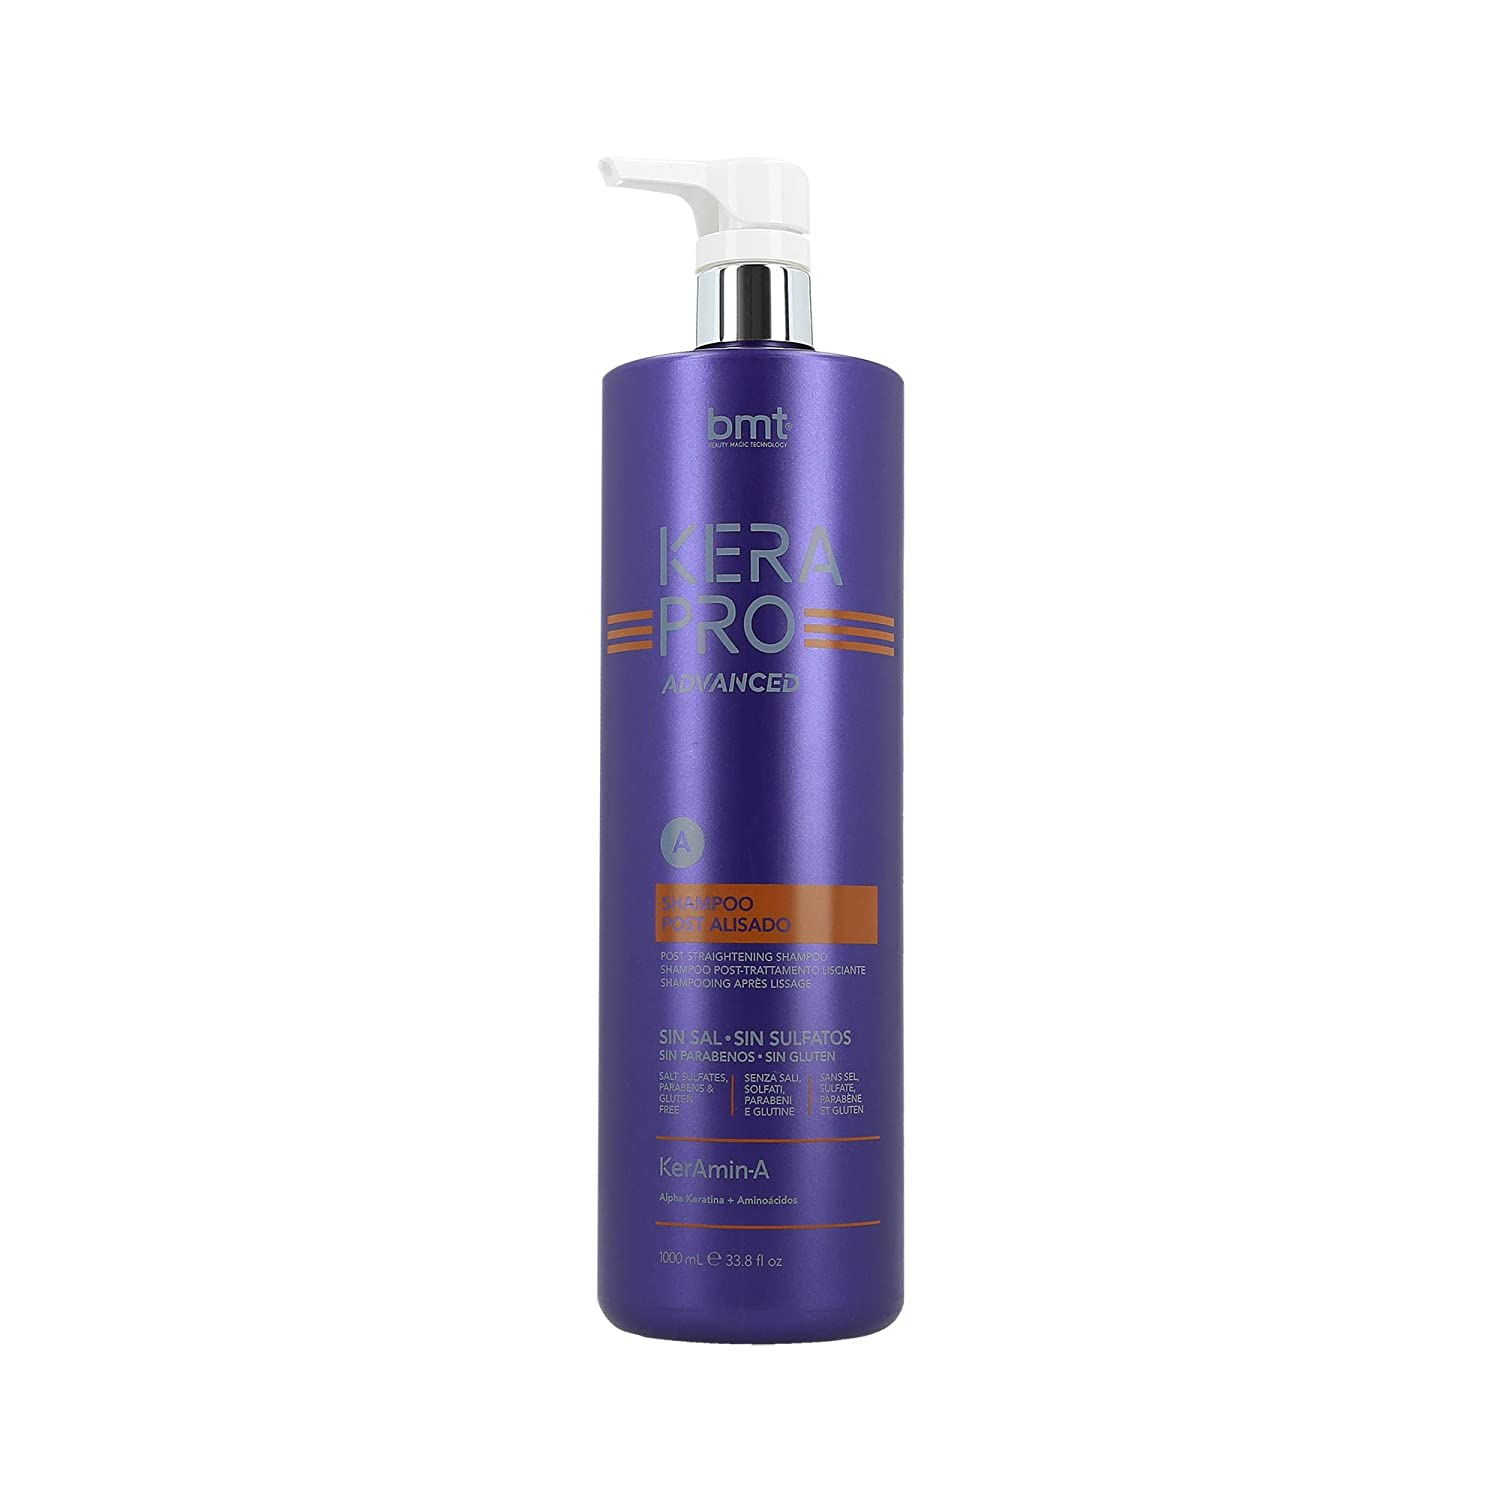 Kerapro Advance Bmt Kerapro Advanced Shampoo Post Alisado 1000 Ml - 100 ml